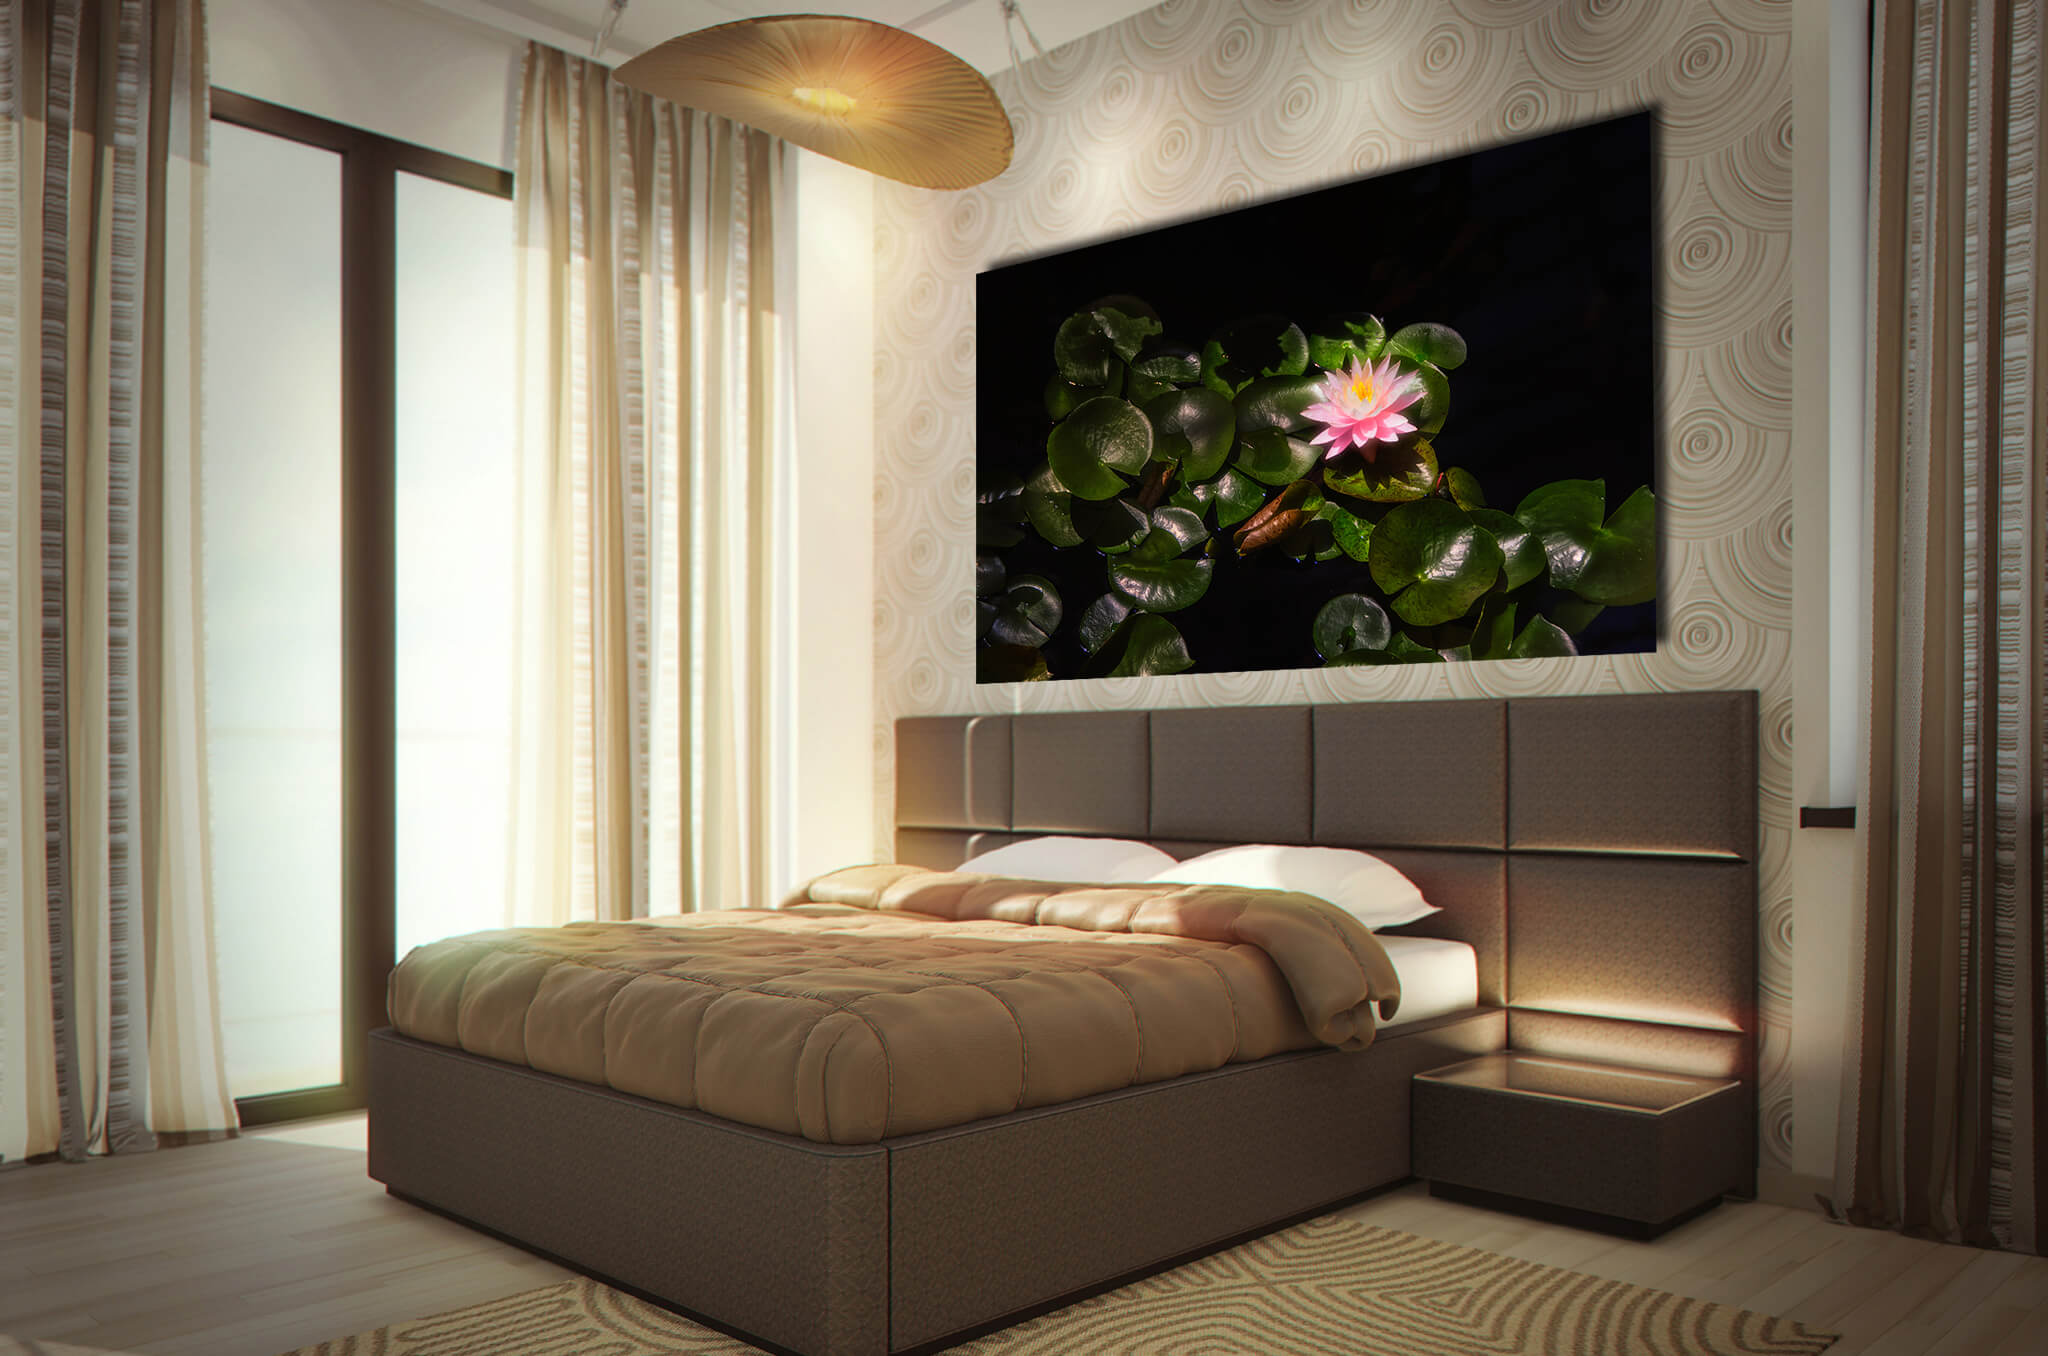 Bedroom Flower Art